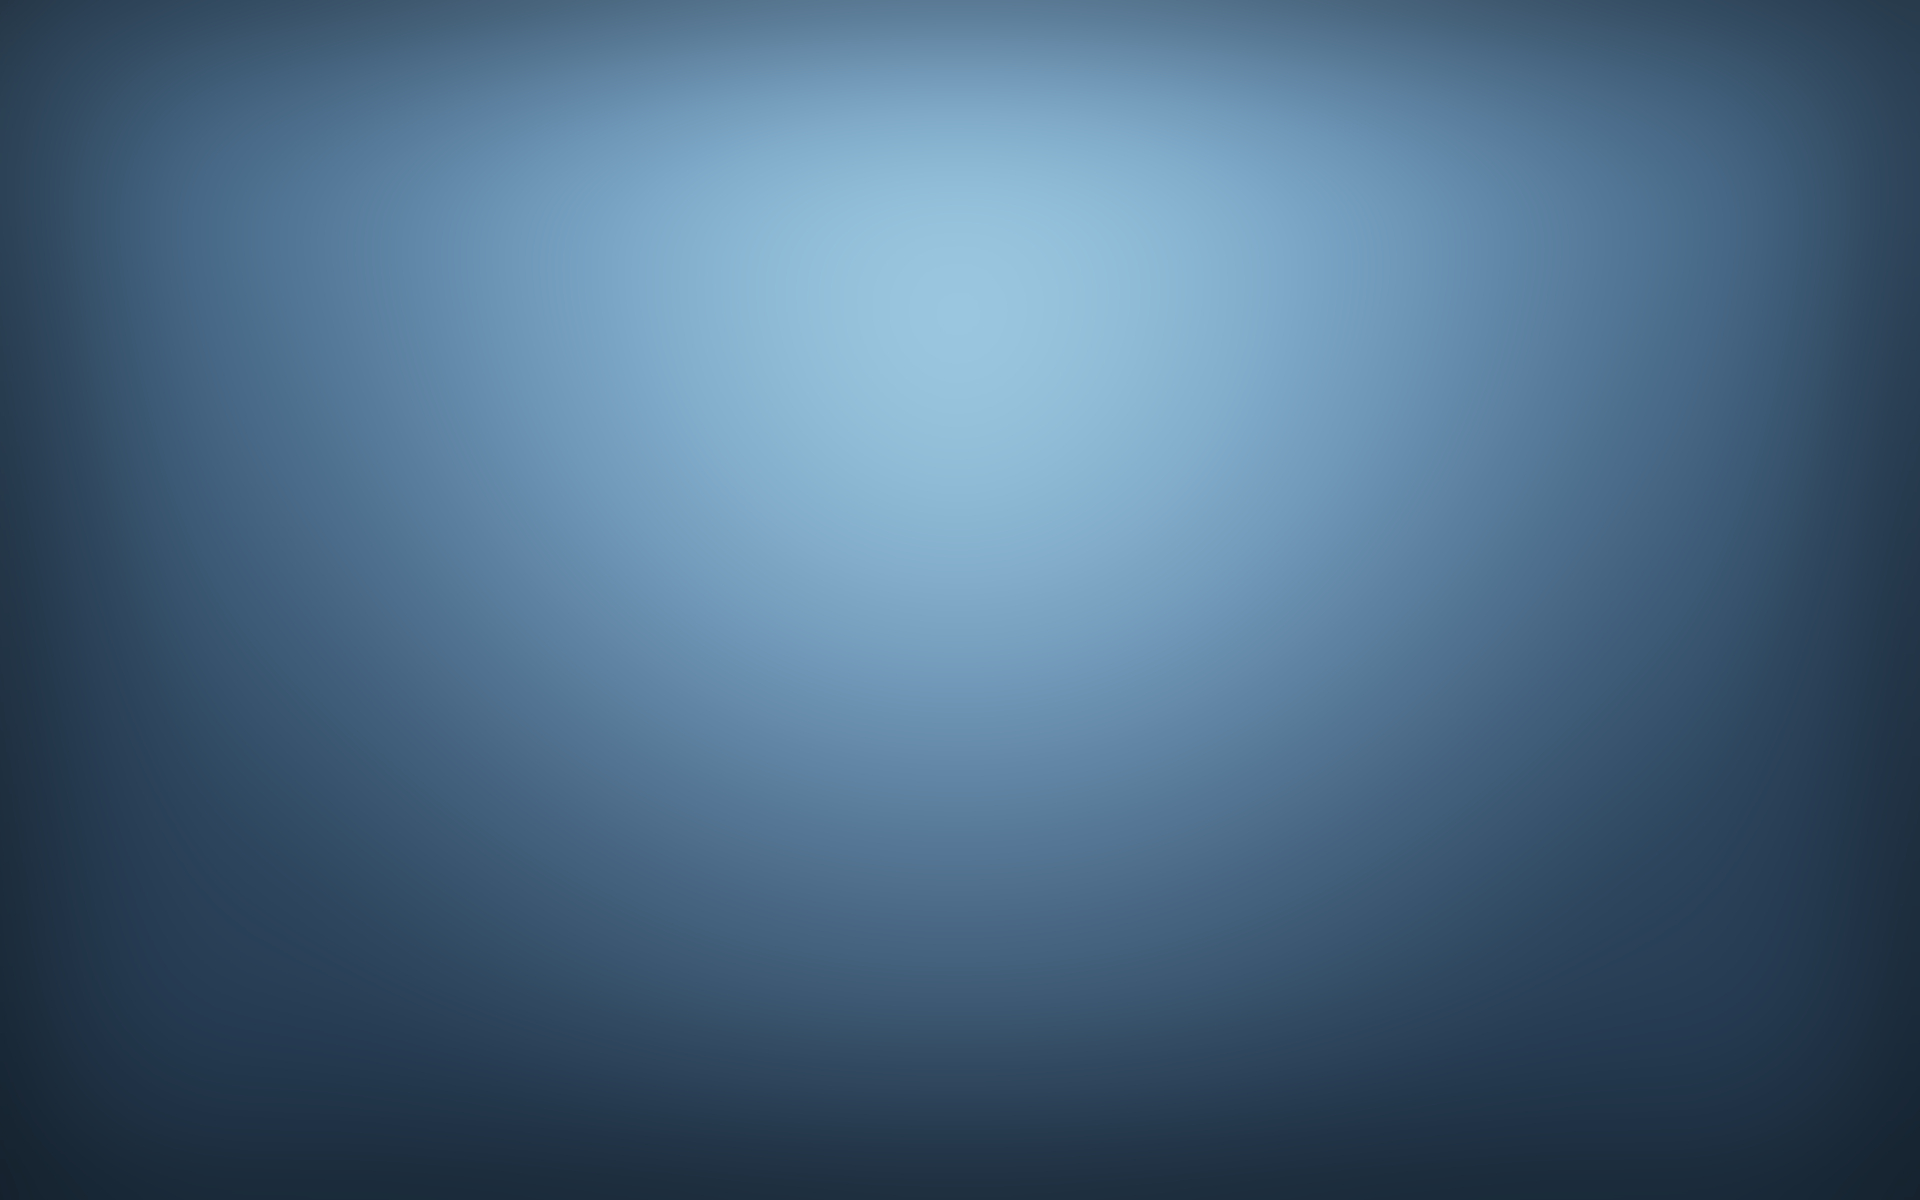 simple-backgrounds-4